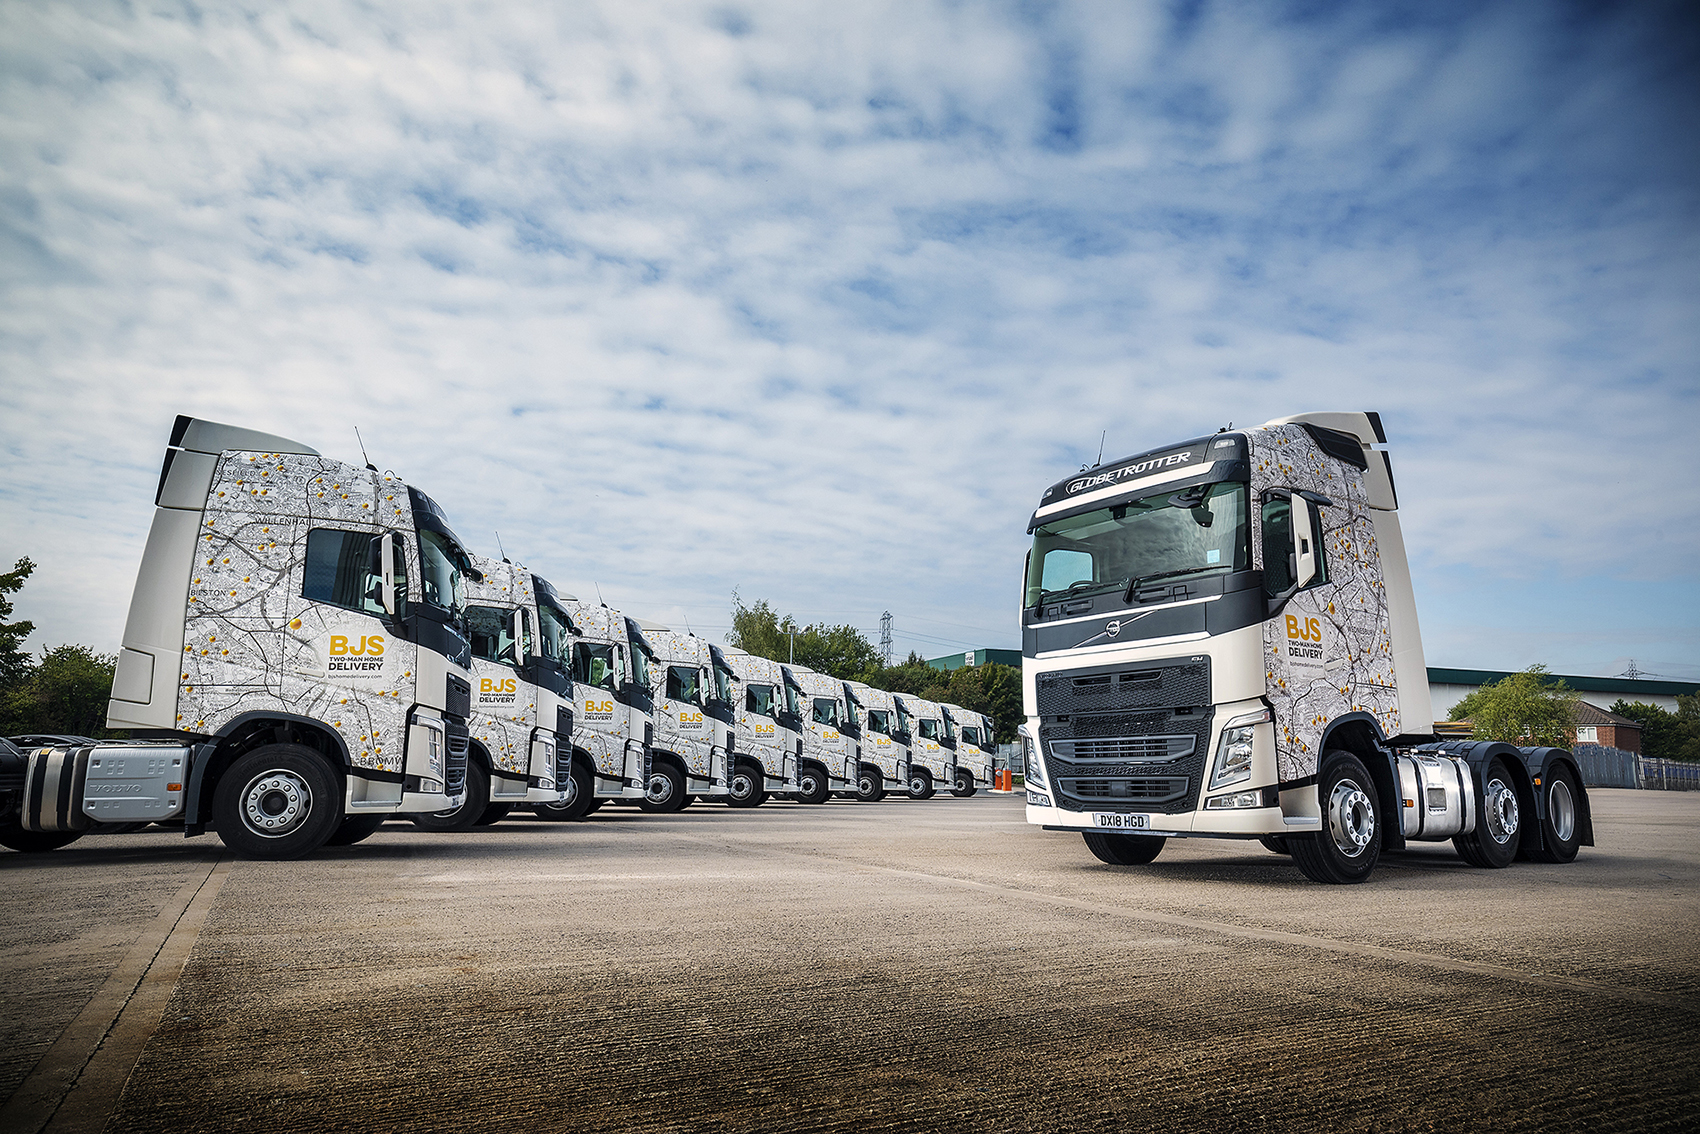 Ten New Volvo FH Tractor Units Put BJS Home Delivery on the Map